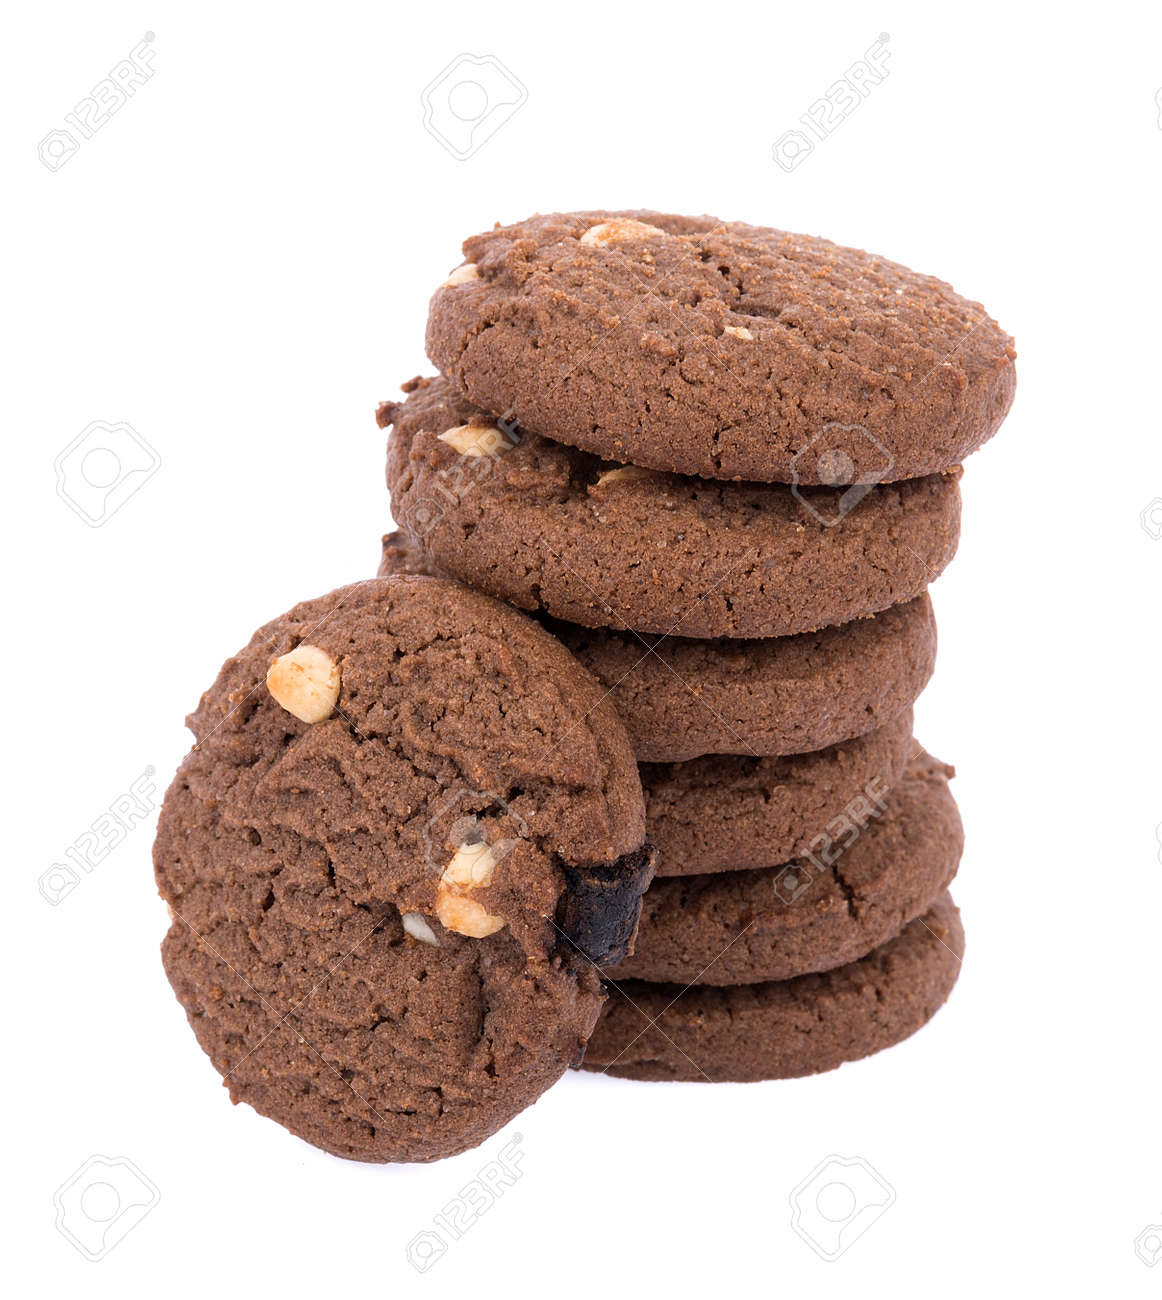 Chocolate chip cookie on white background - 158705421